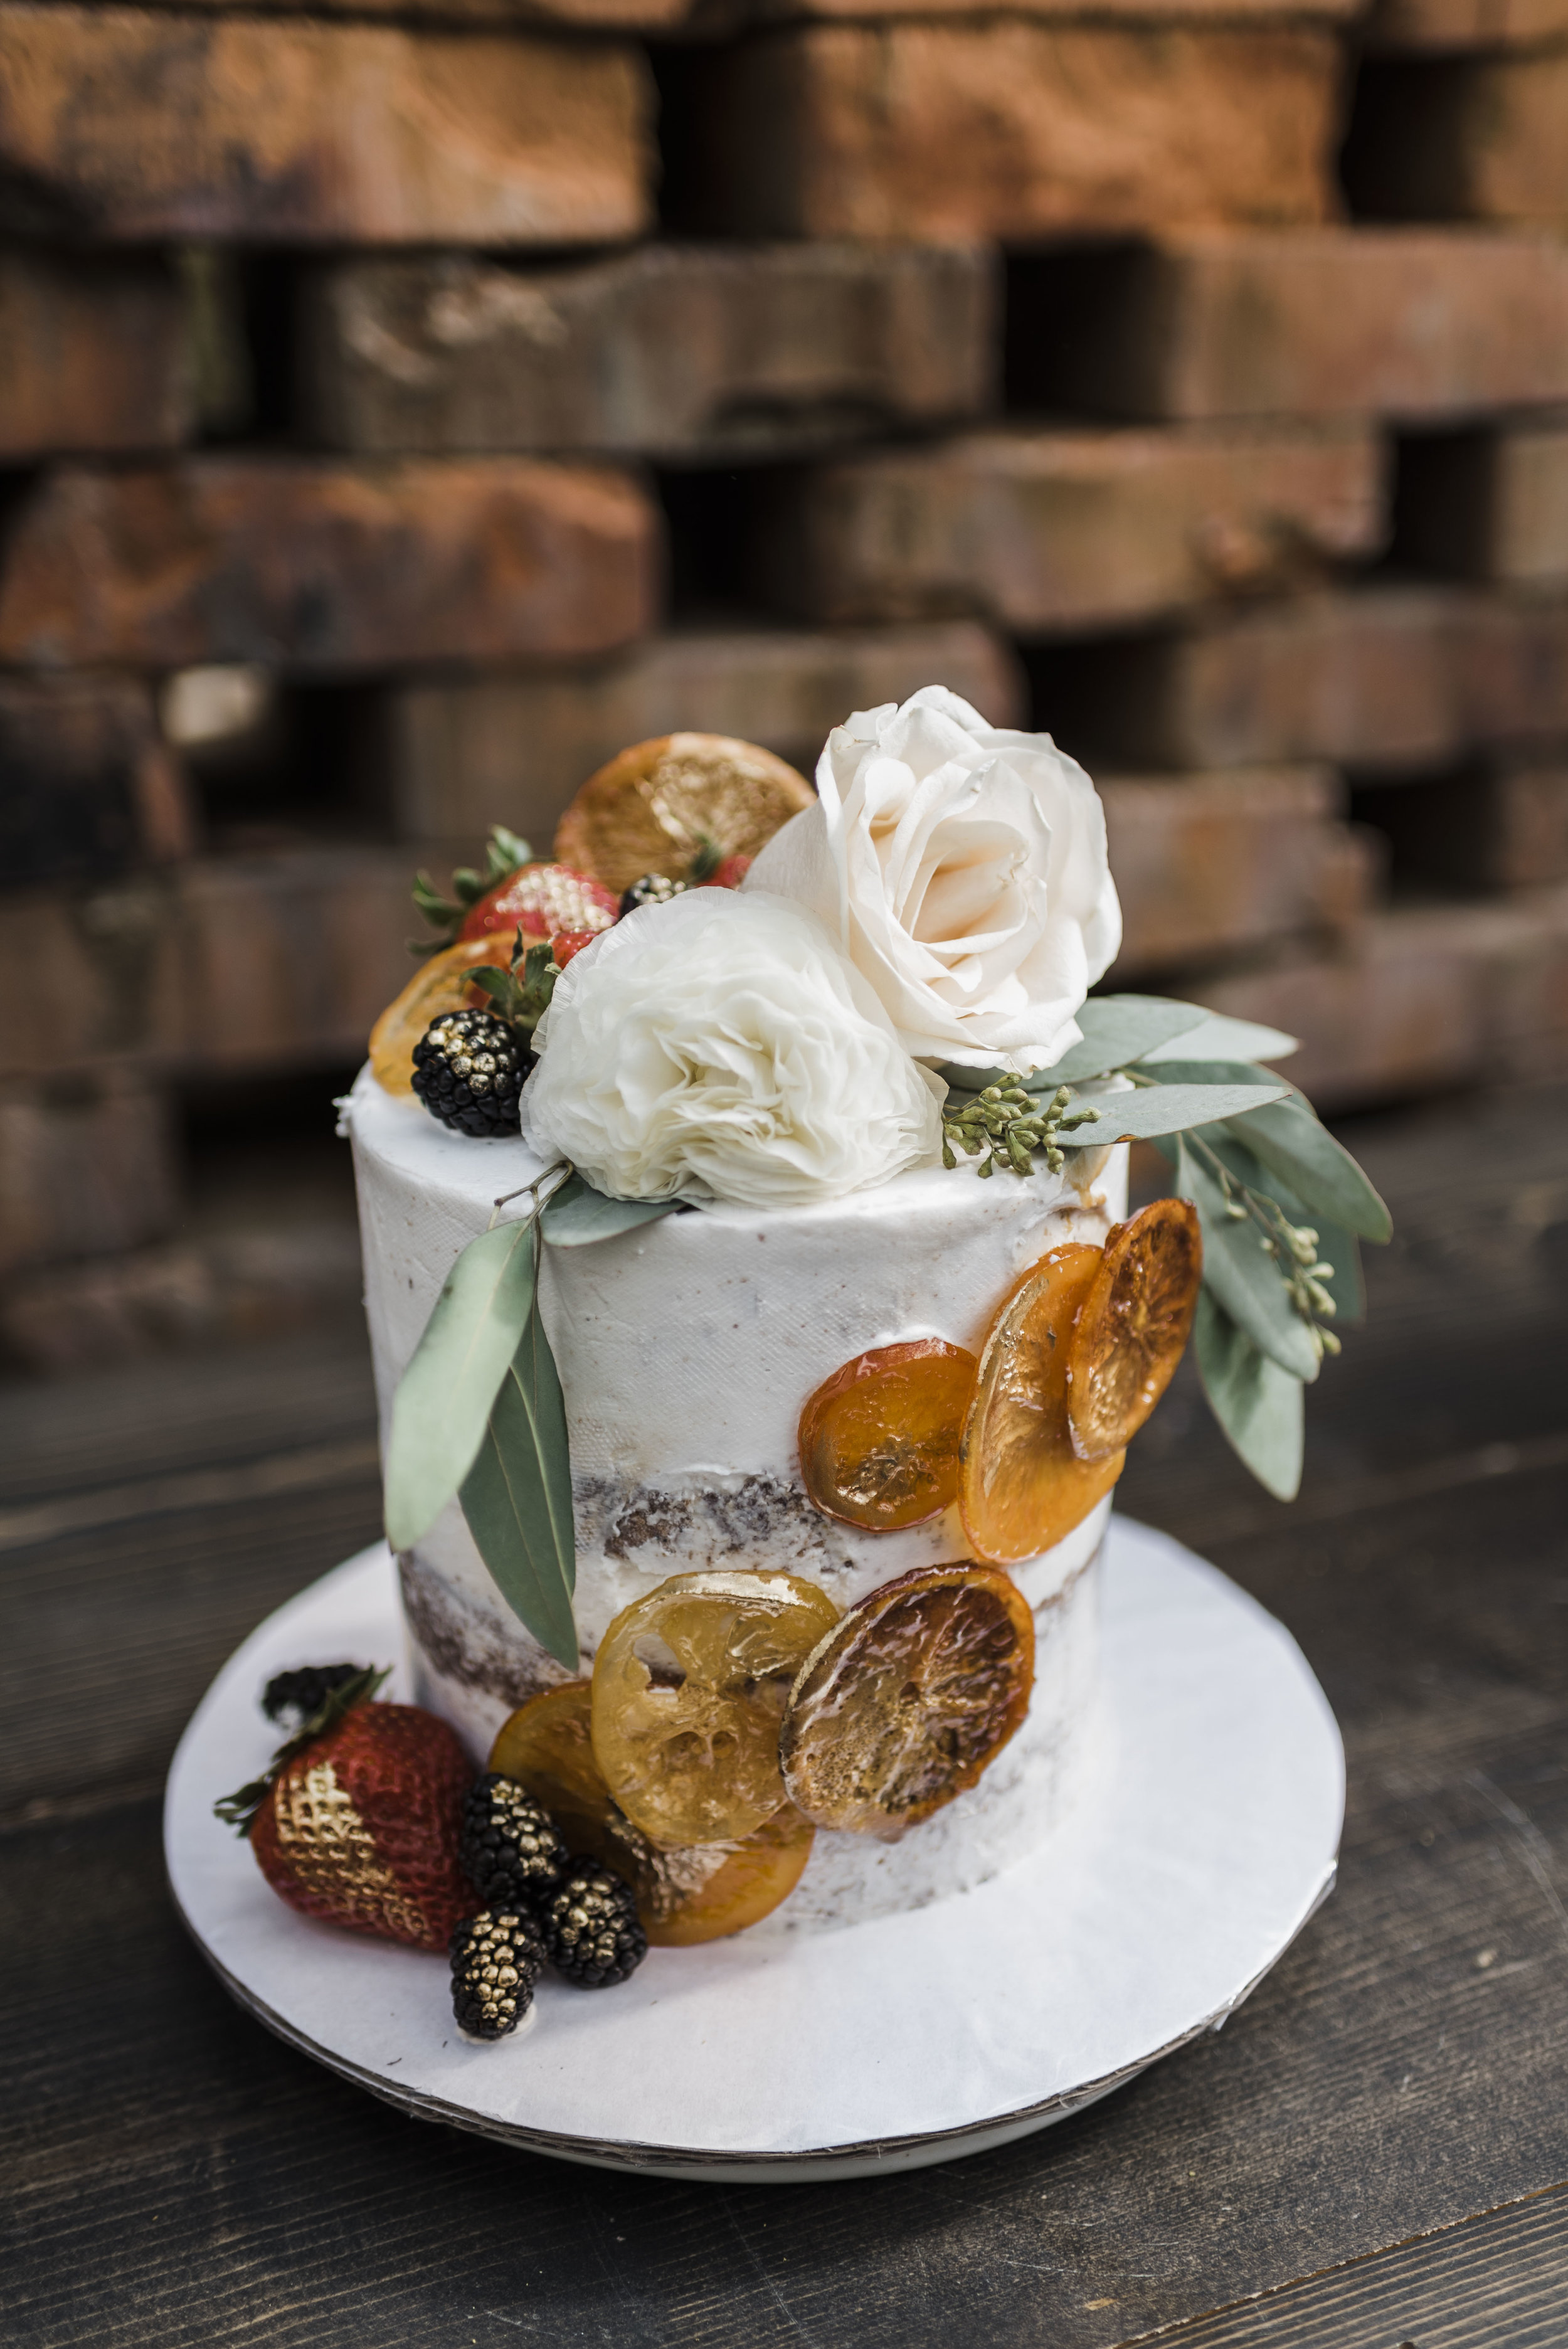 wedding cake oranges fruit gold flowers chattanooga Tennessee barn